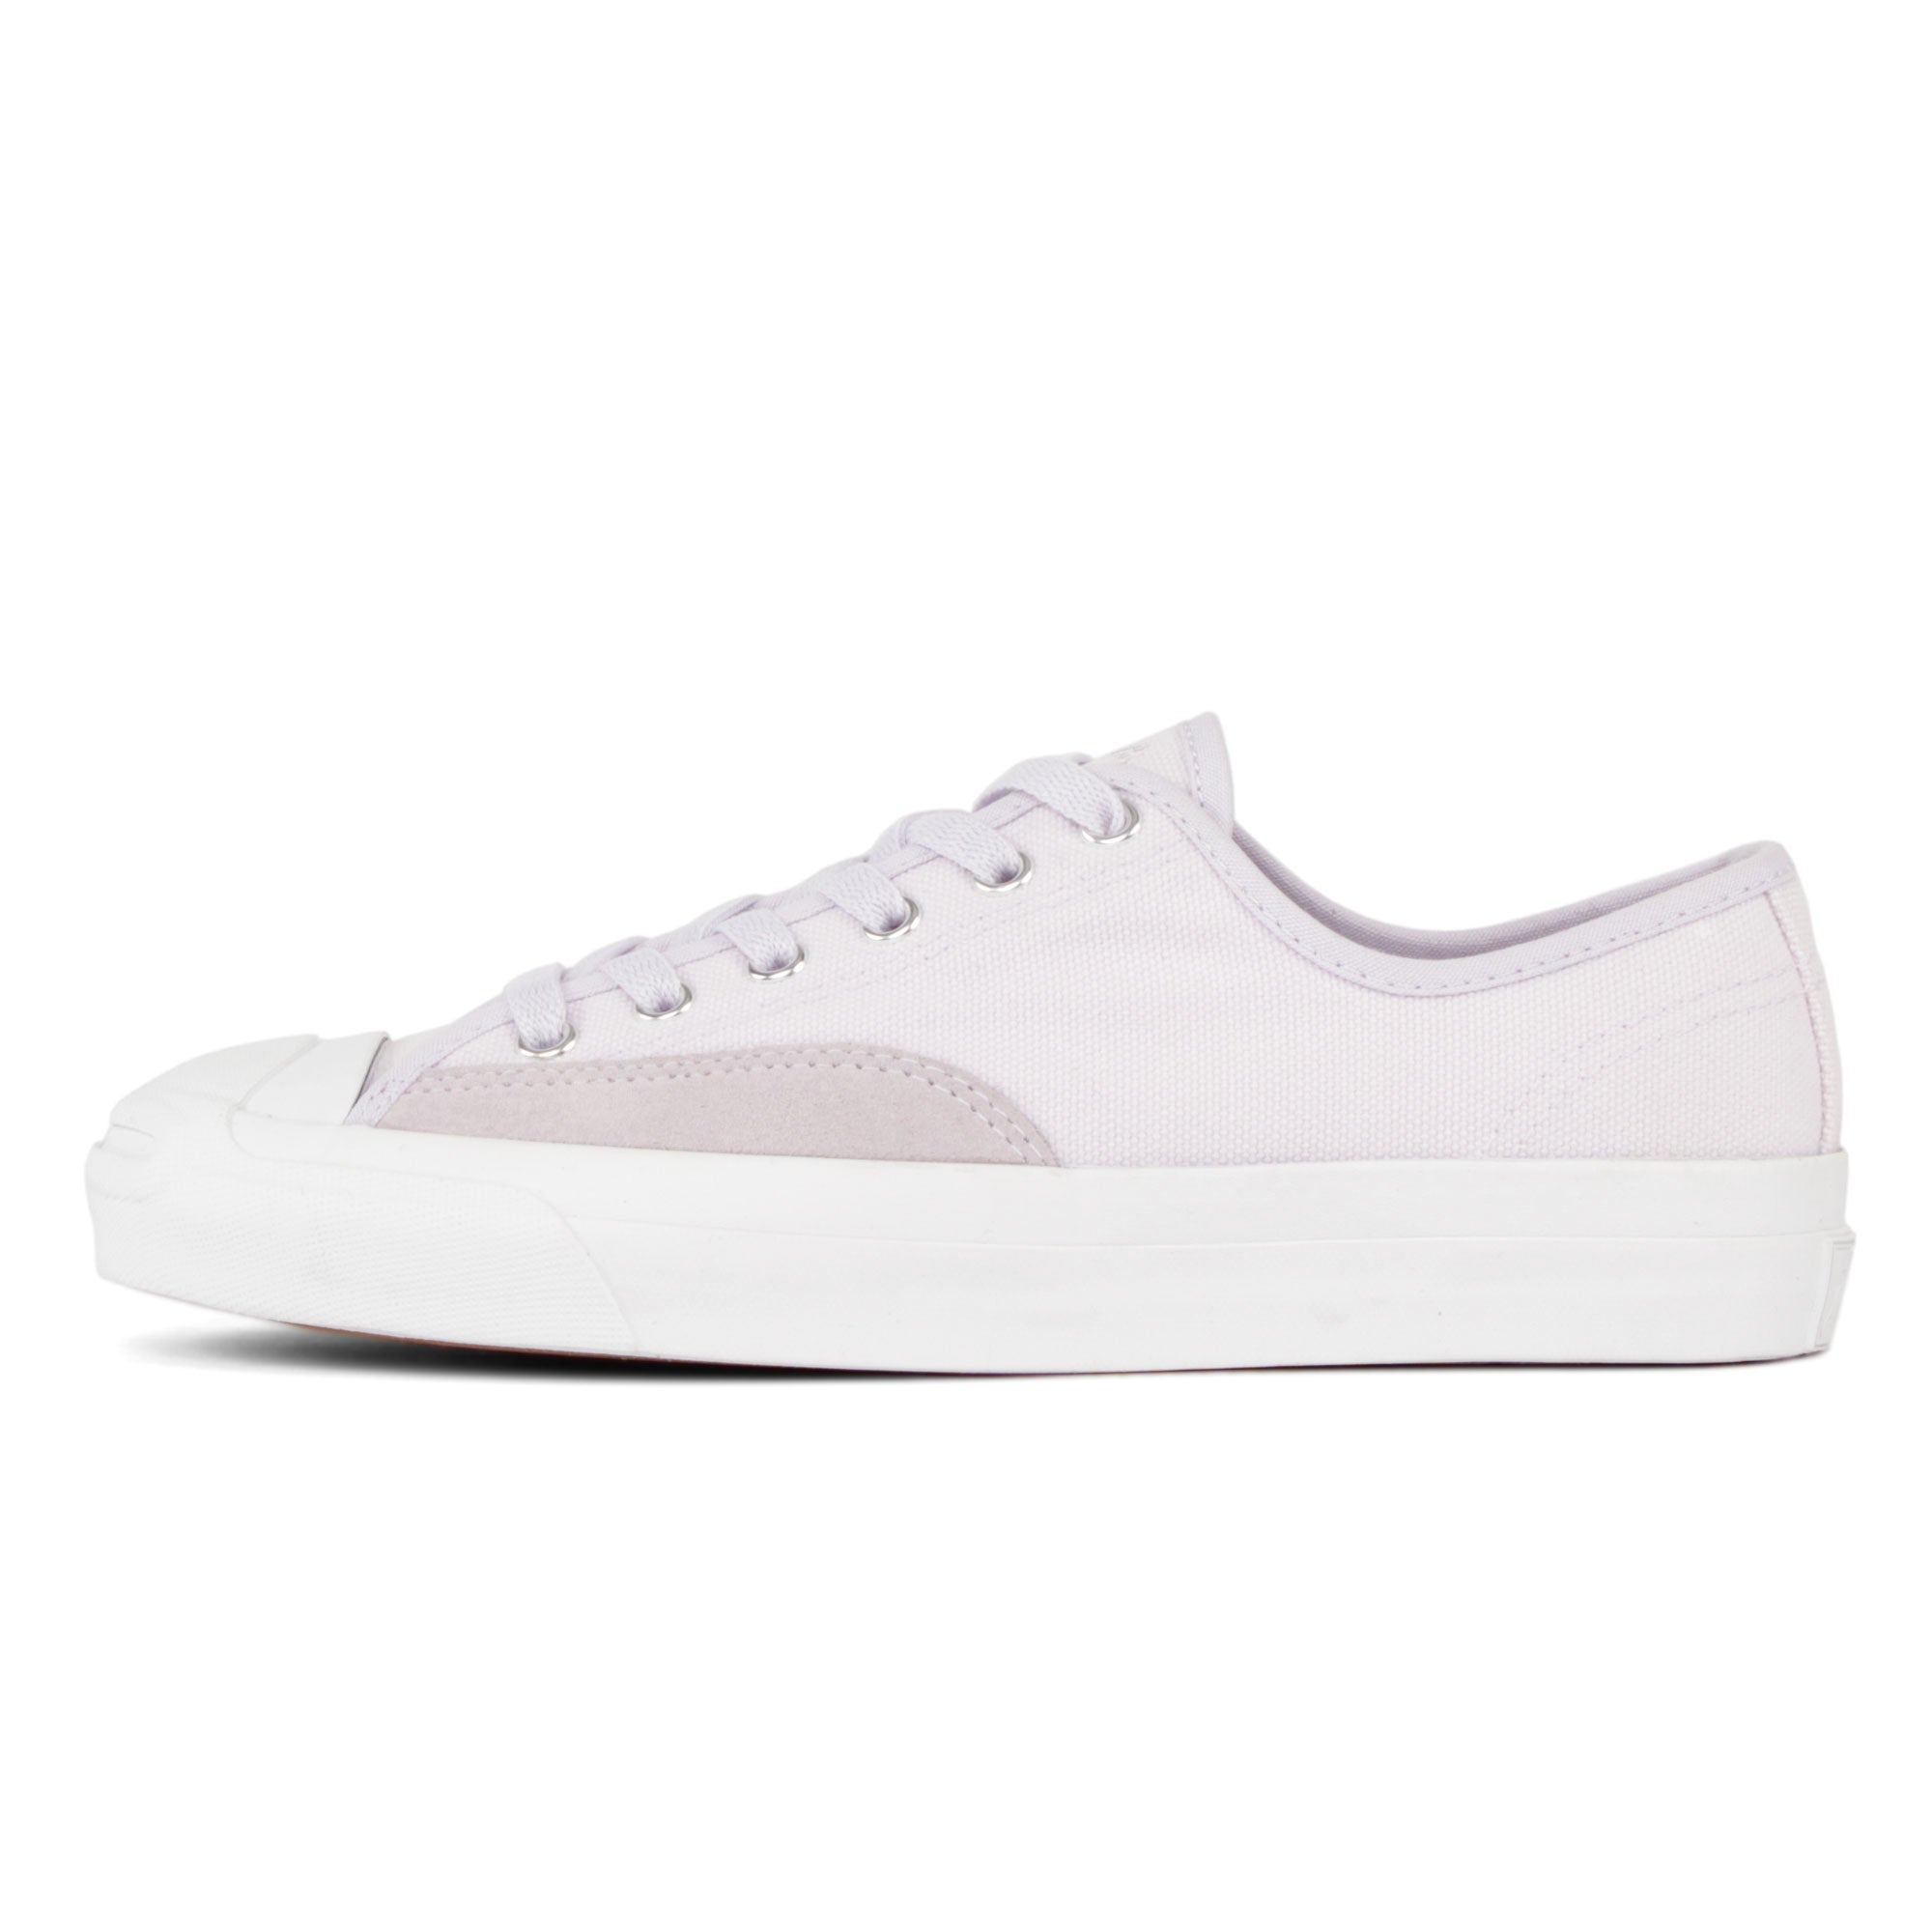 Converse Jack Purcell Pro Product Photo #1